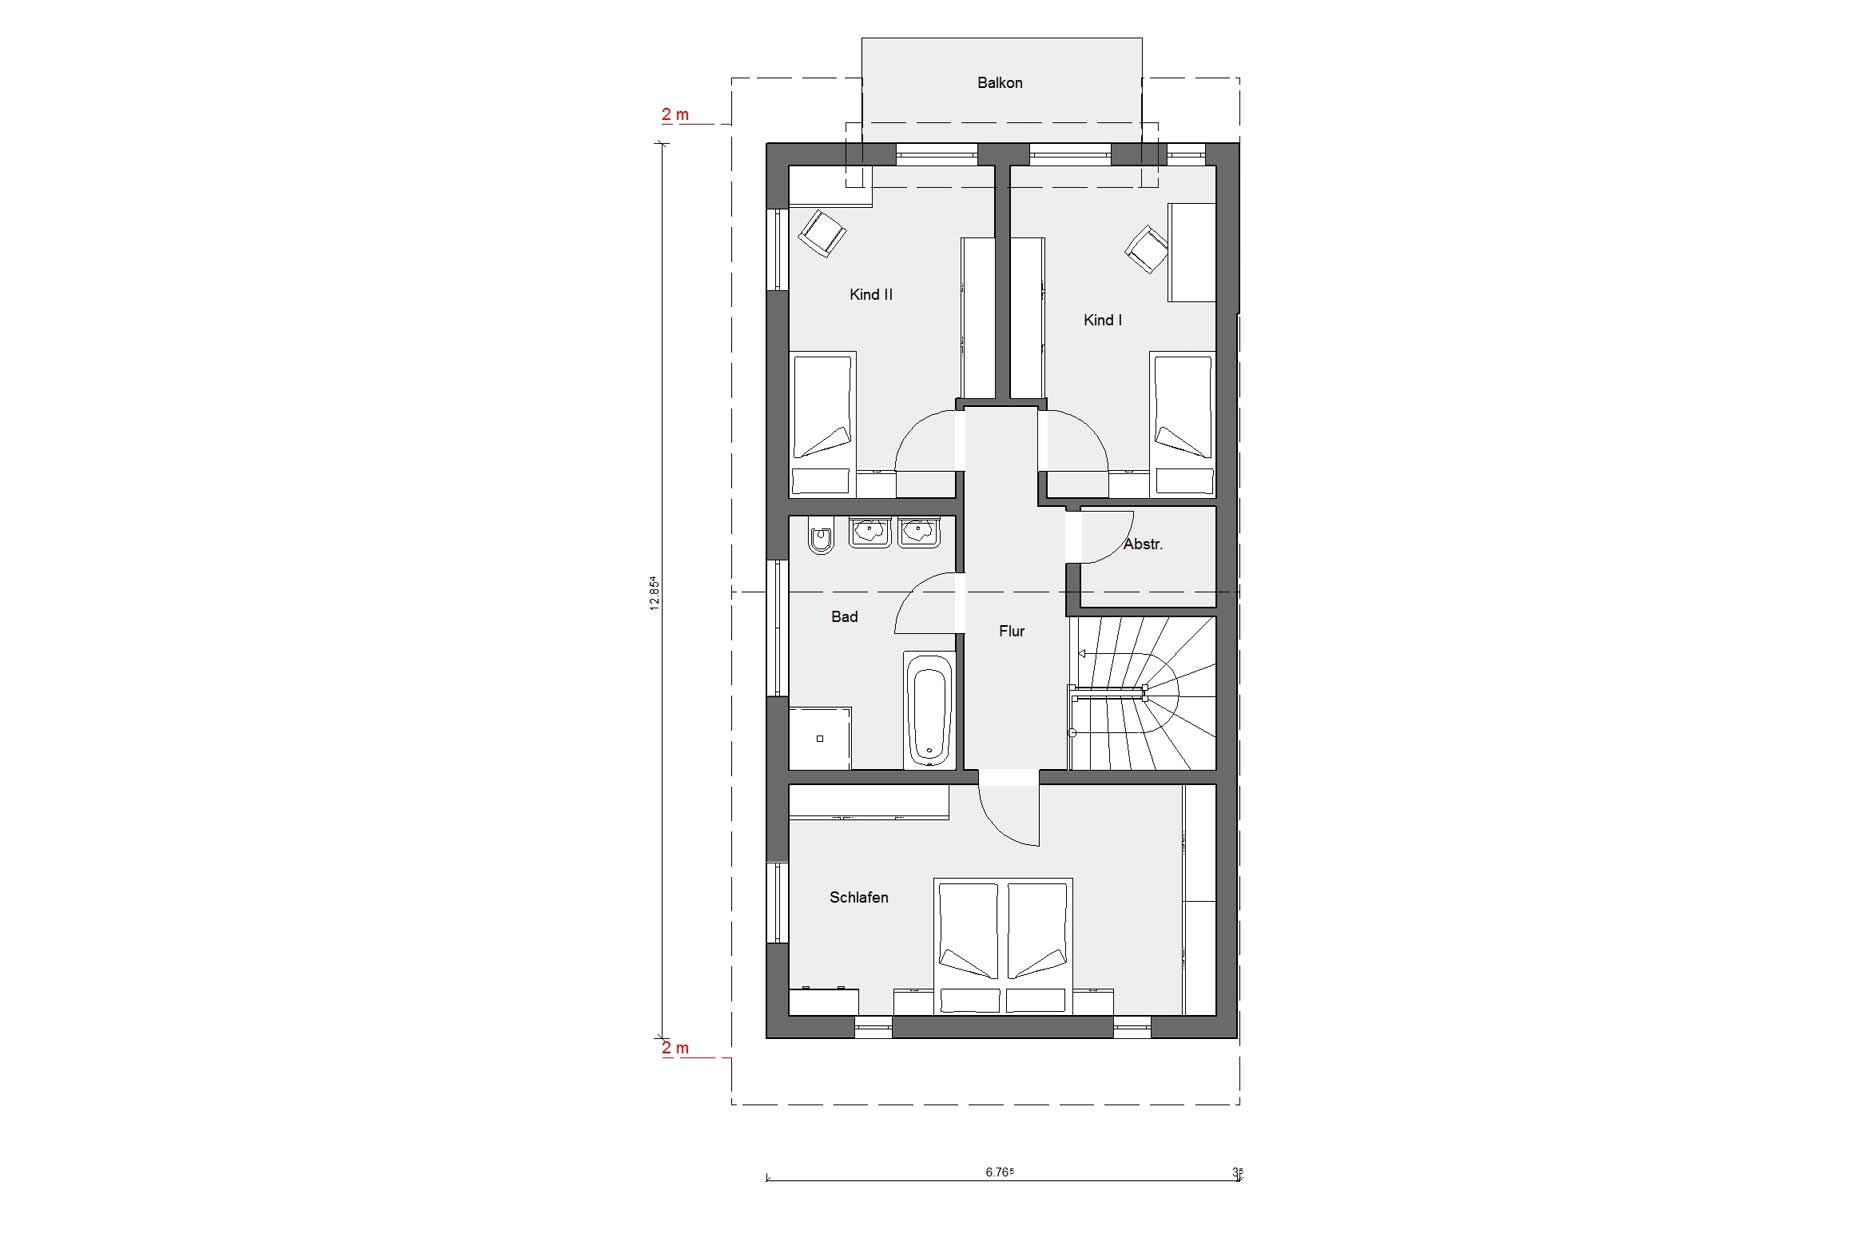 Ground floor first floor D 15-216.1 terraced house